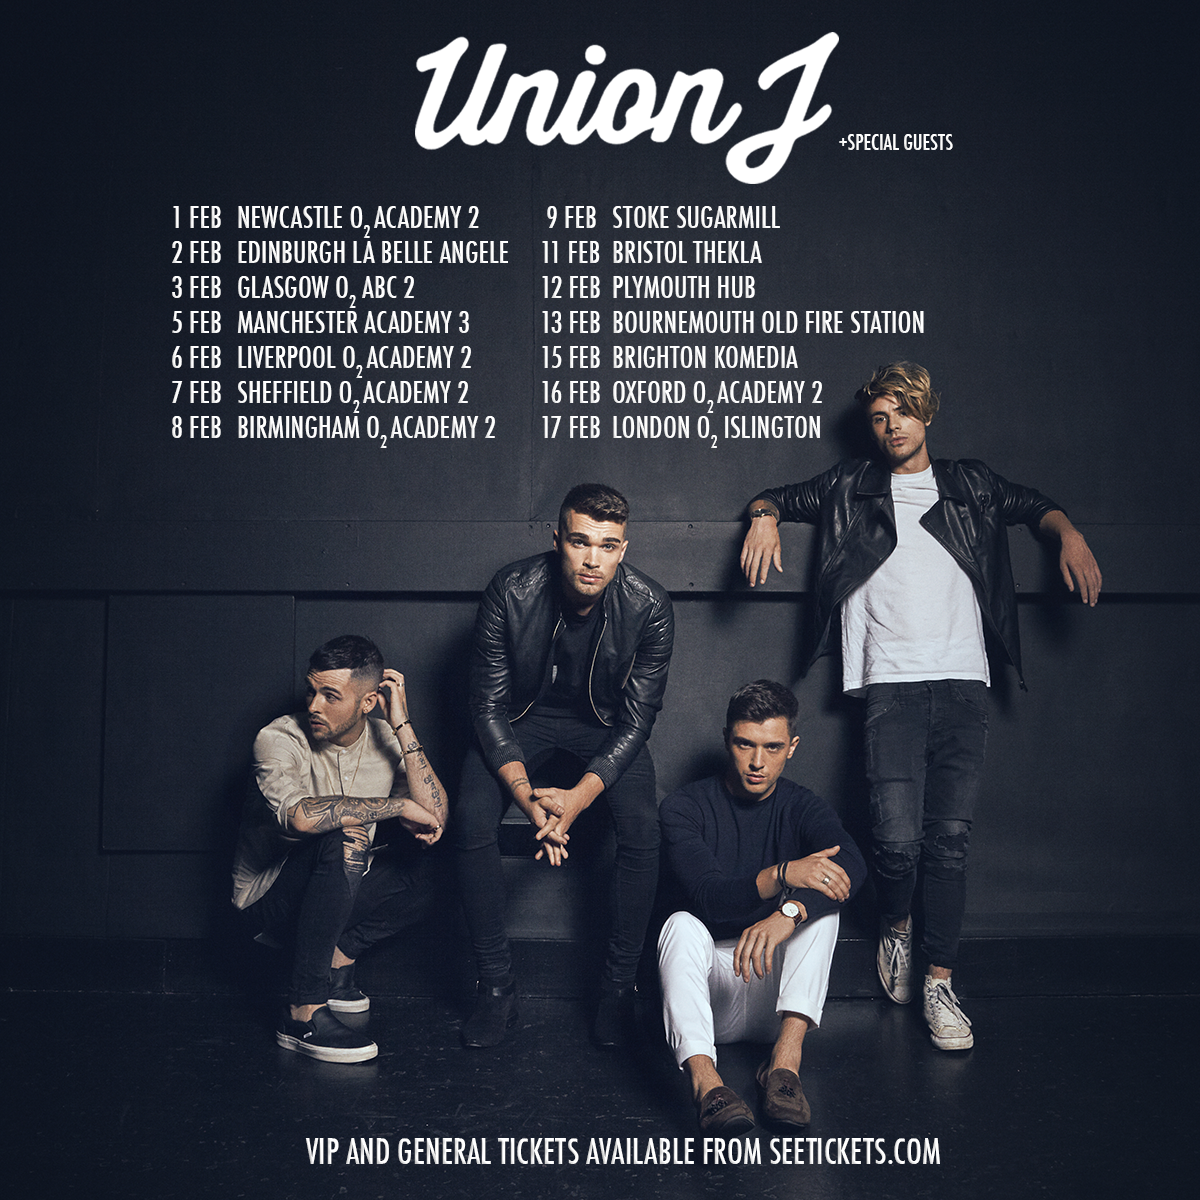 WIN Tickets to see UnionJ in Bournemouth!